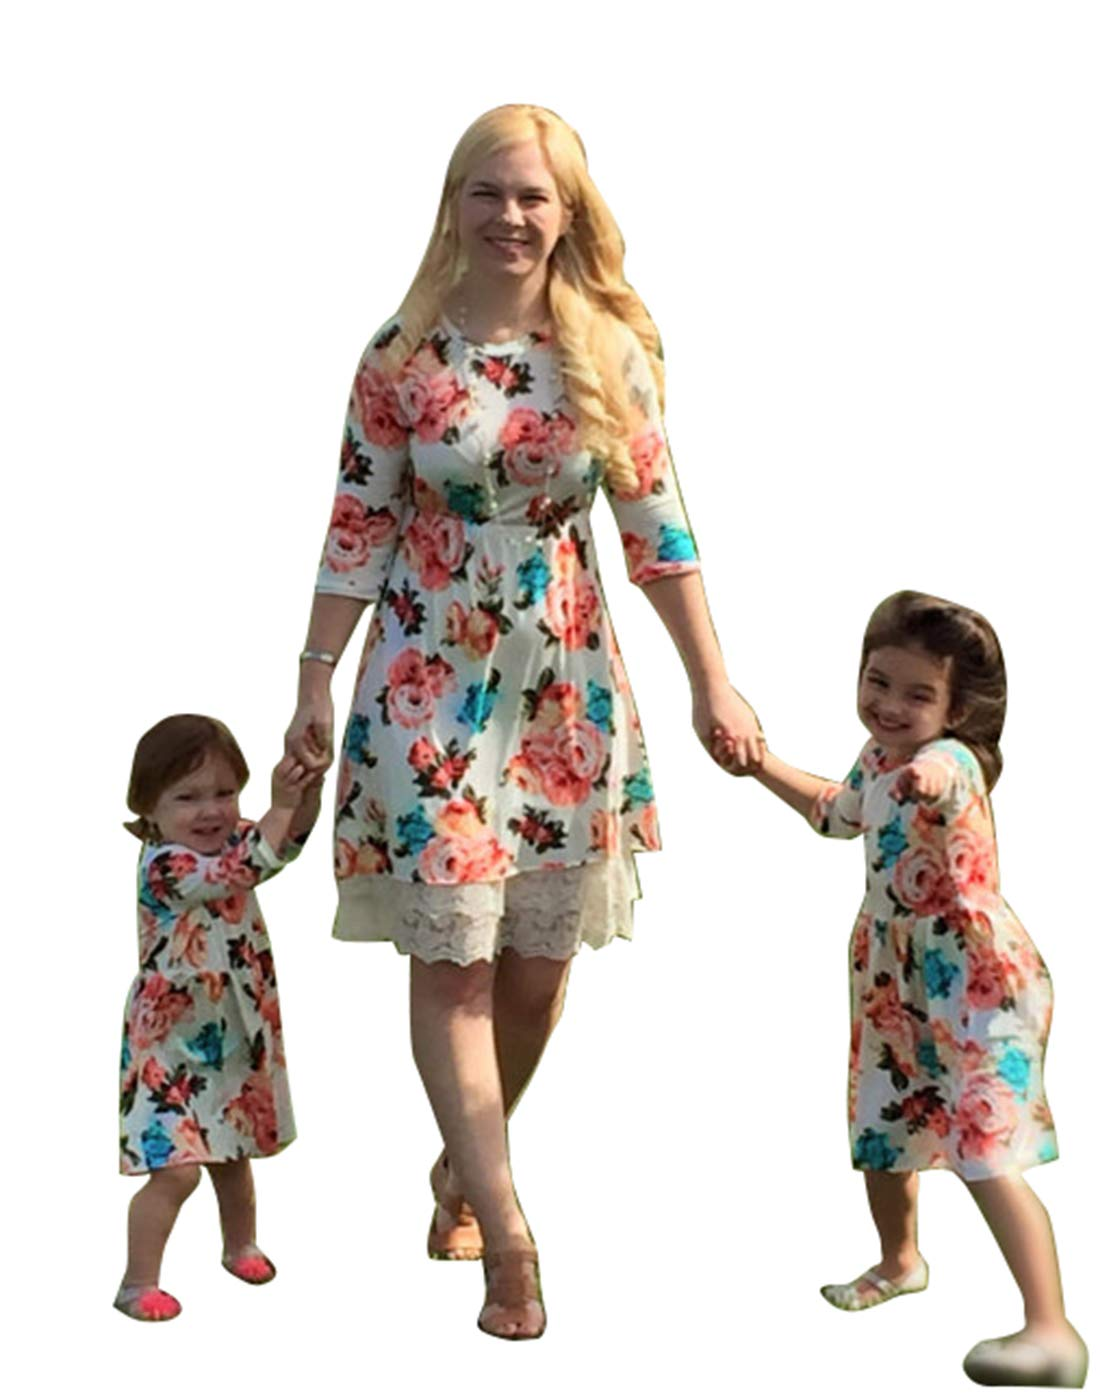 Mommy and Me 1 Piece Floral Print Dress Family Matching Long Sleeve High Waist Lace Midi Dress Spring Fall Outfits (Floral, Daughter/0-1T)